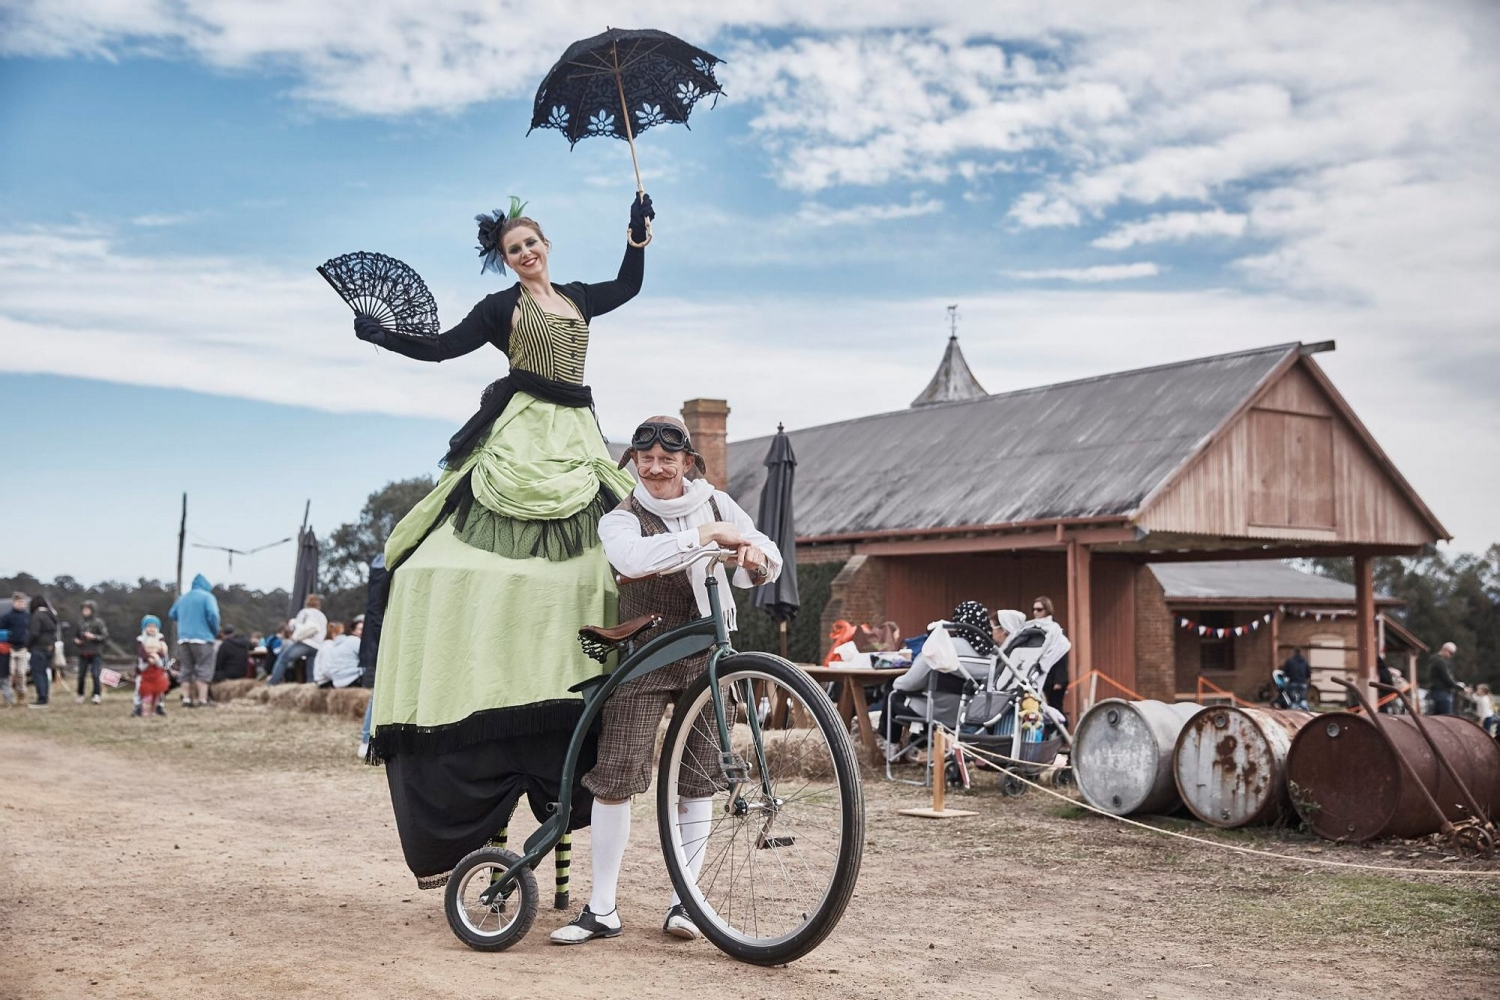 Woman and man in costume with an old fashioned bike